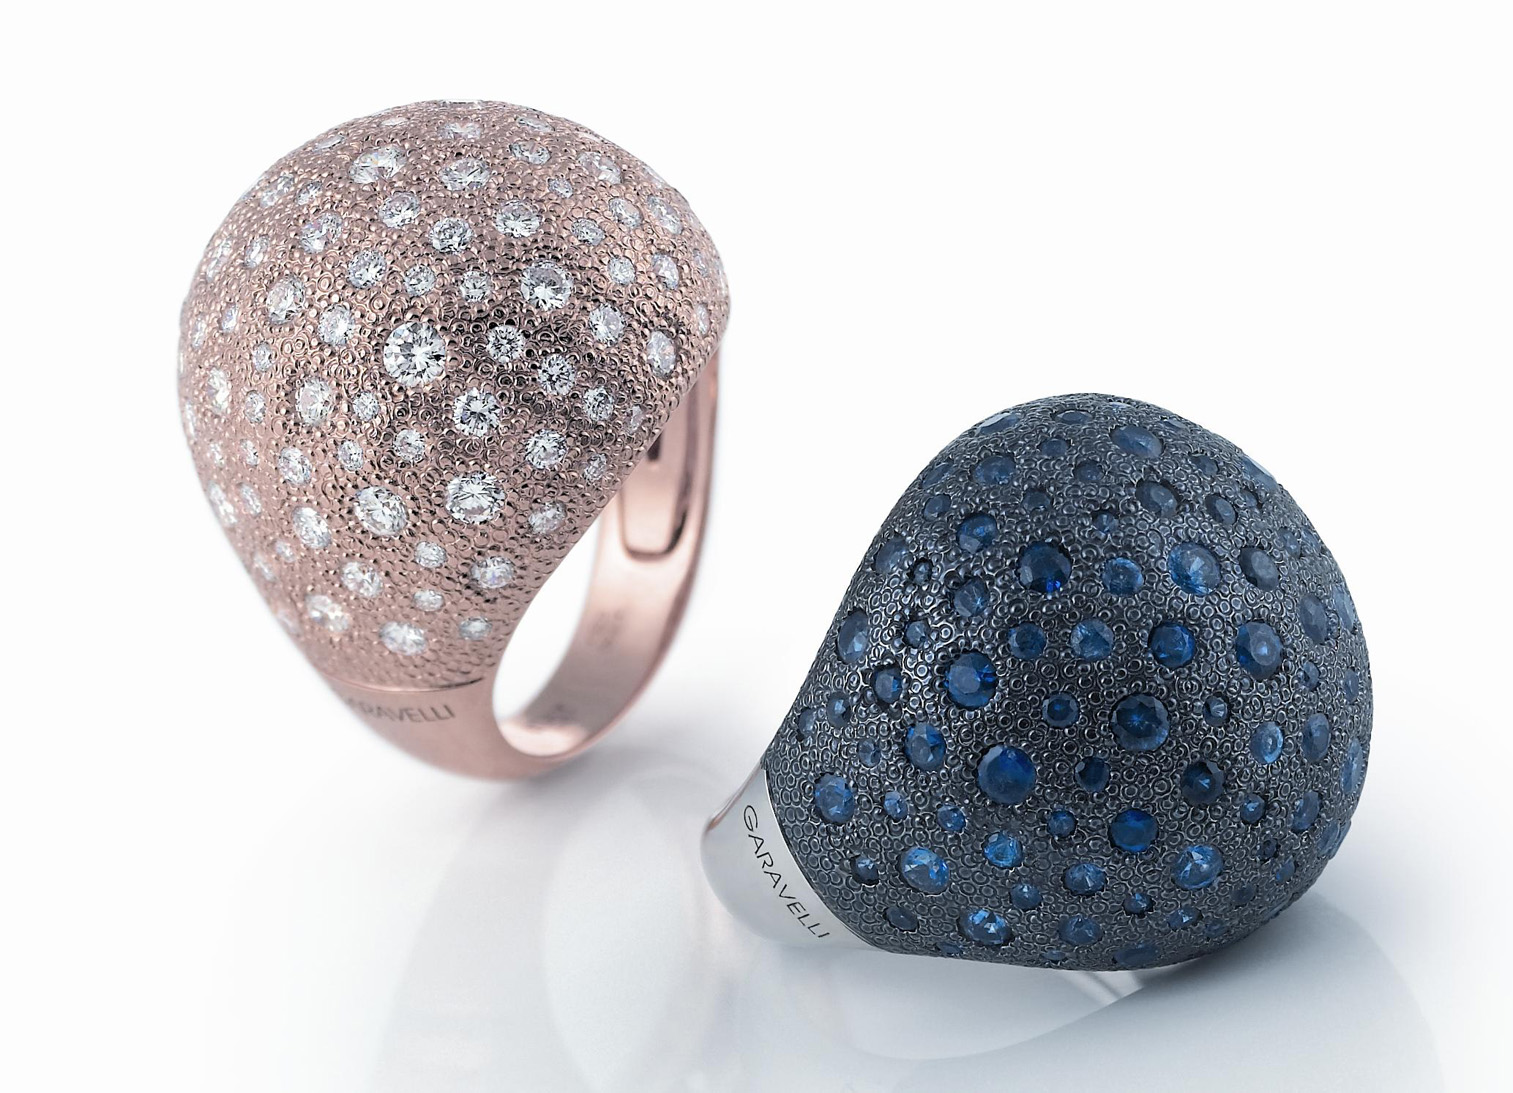 78ac87124 The Garavelli Dune collection uses shapes created with hammered 18k gold  then covered with diamonds of various size. The line includes rings,  bracelets, ...